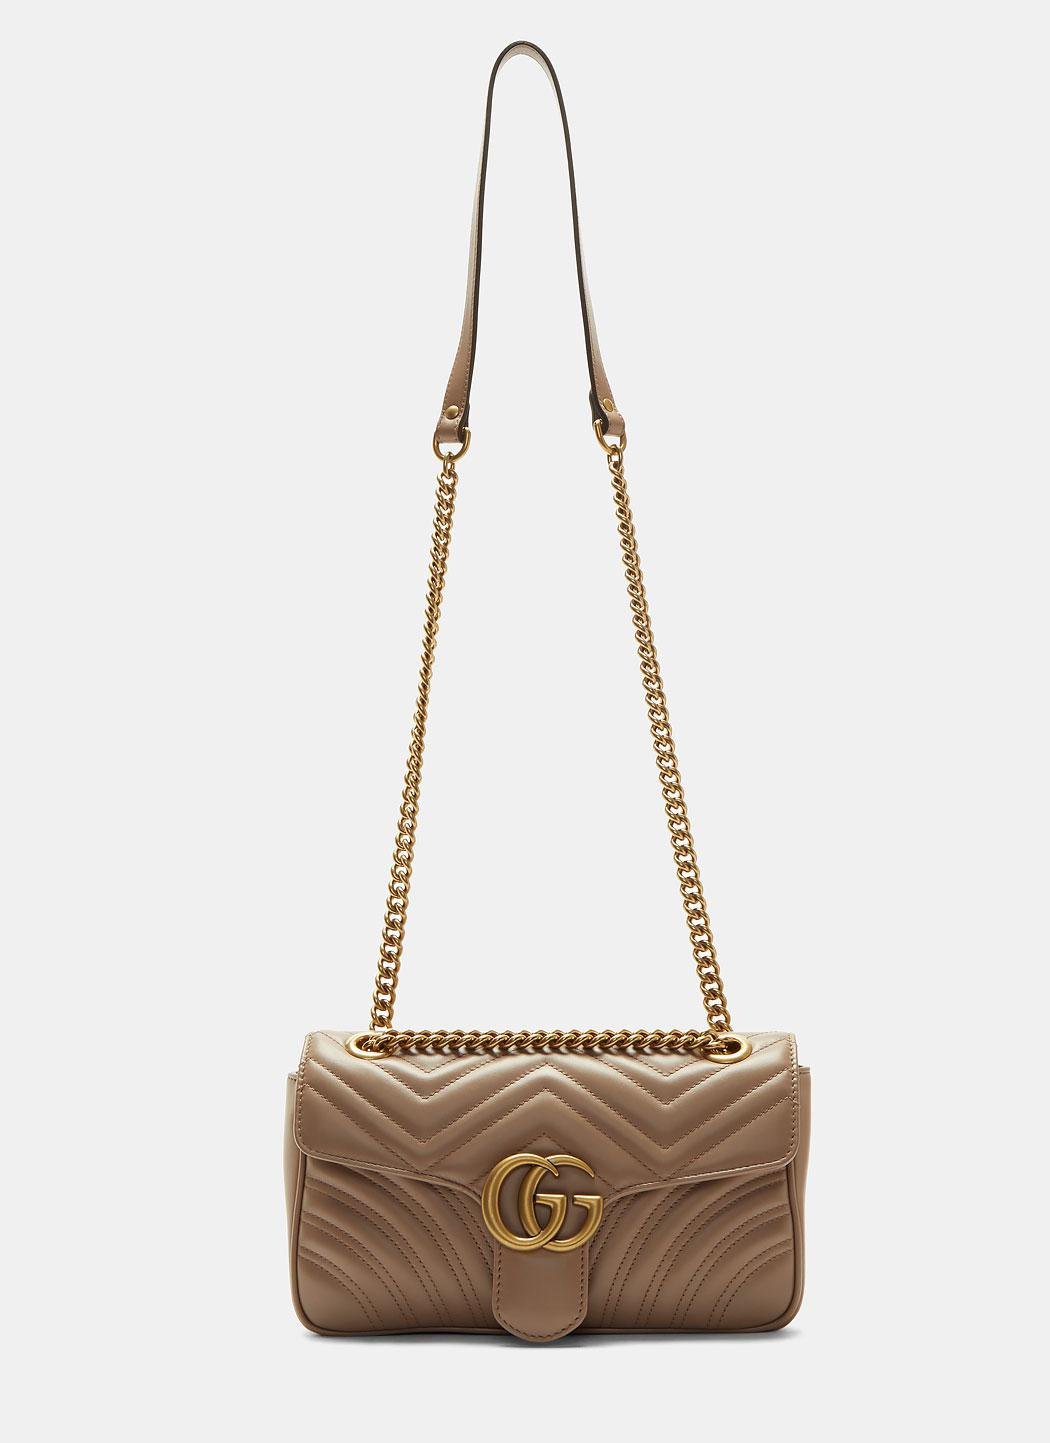 92709ffad648 Gucci Gg Marmont Matelassé Small Chain Shoulder Bag In Taupe in ...